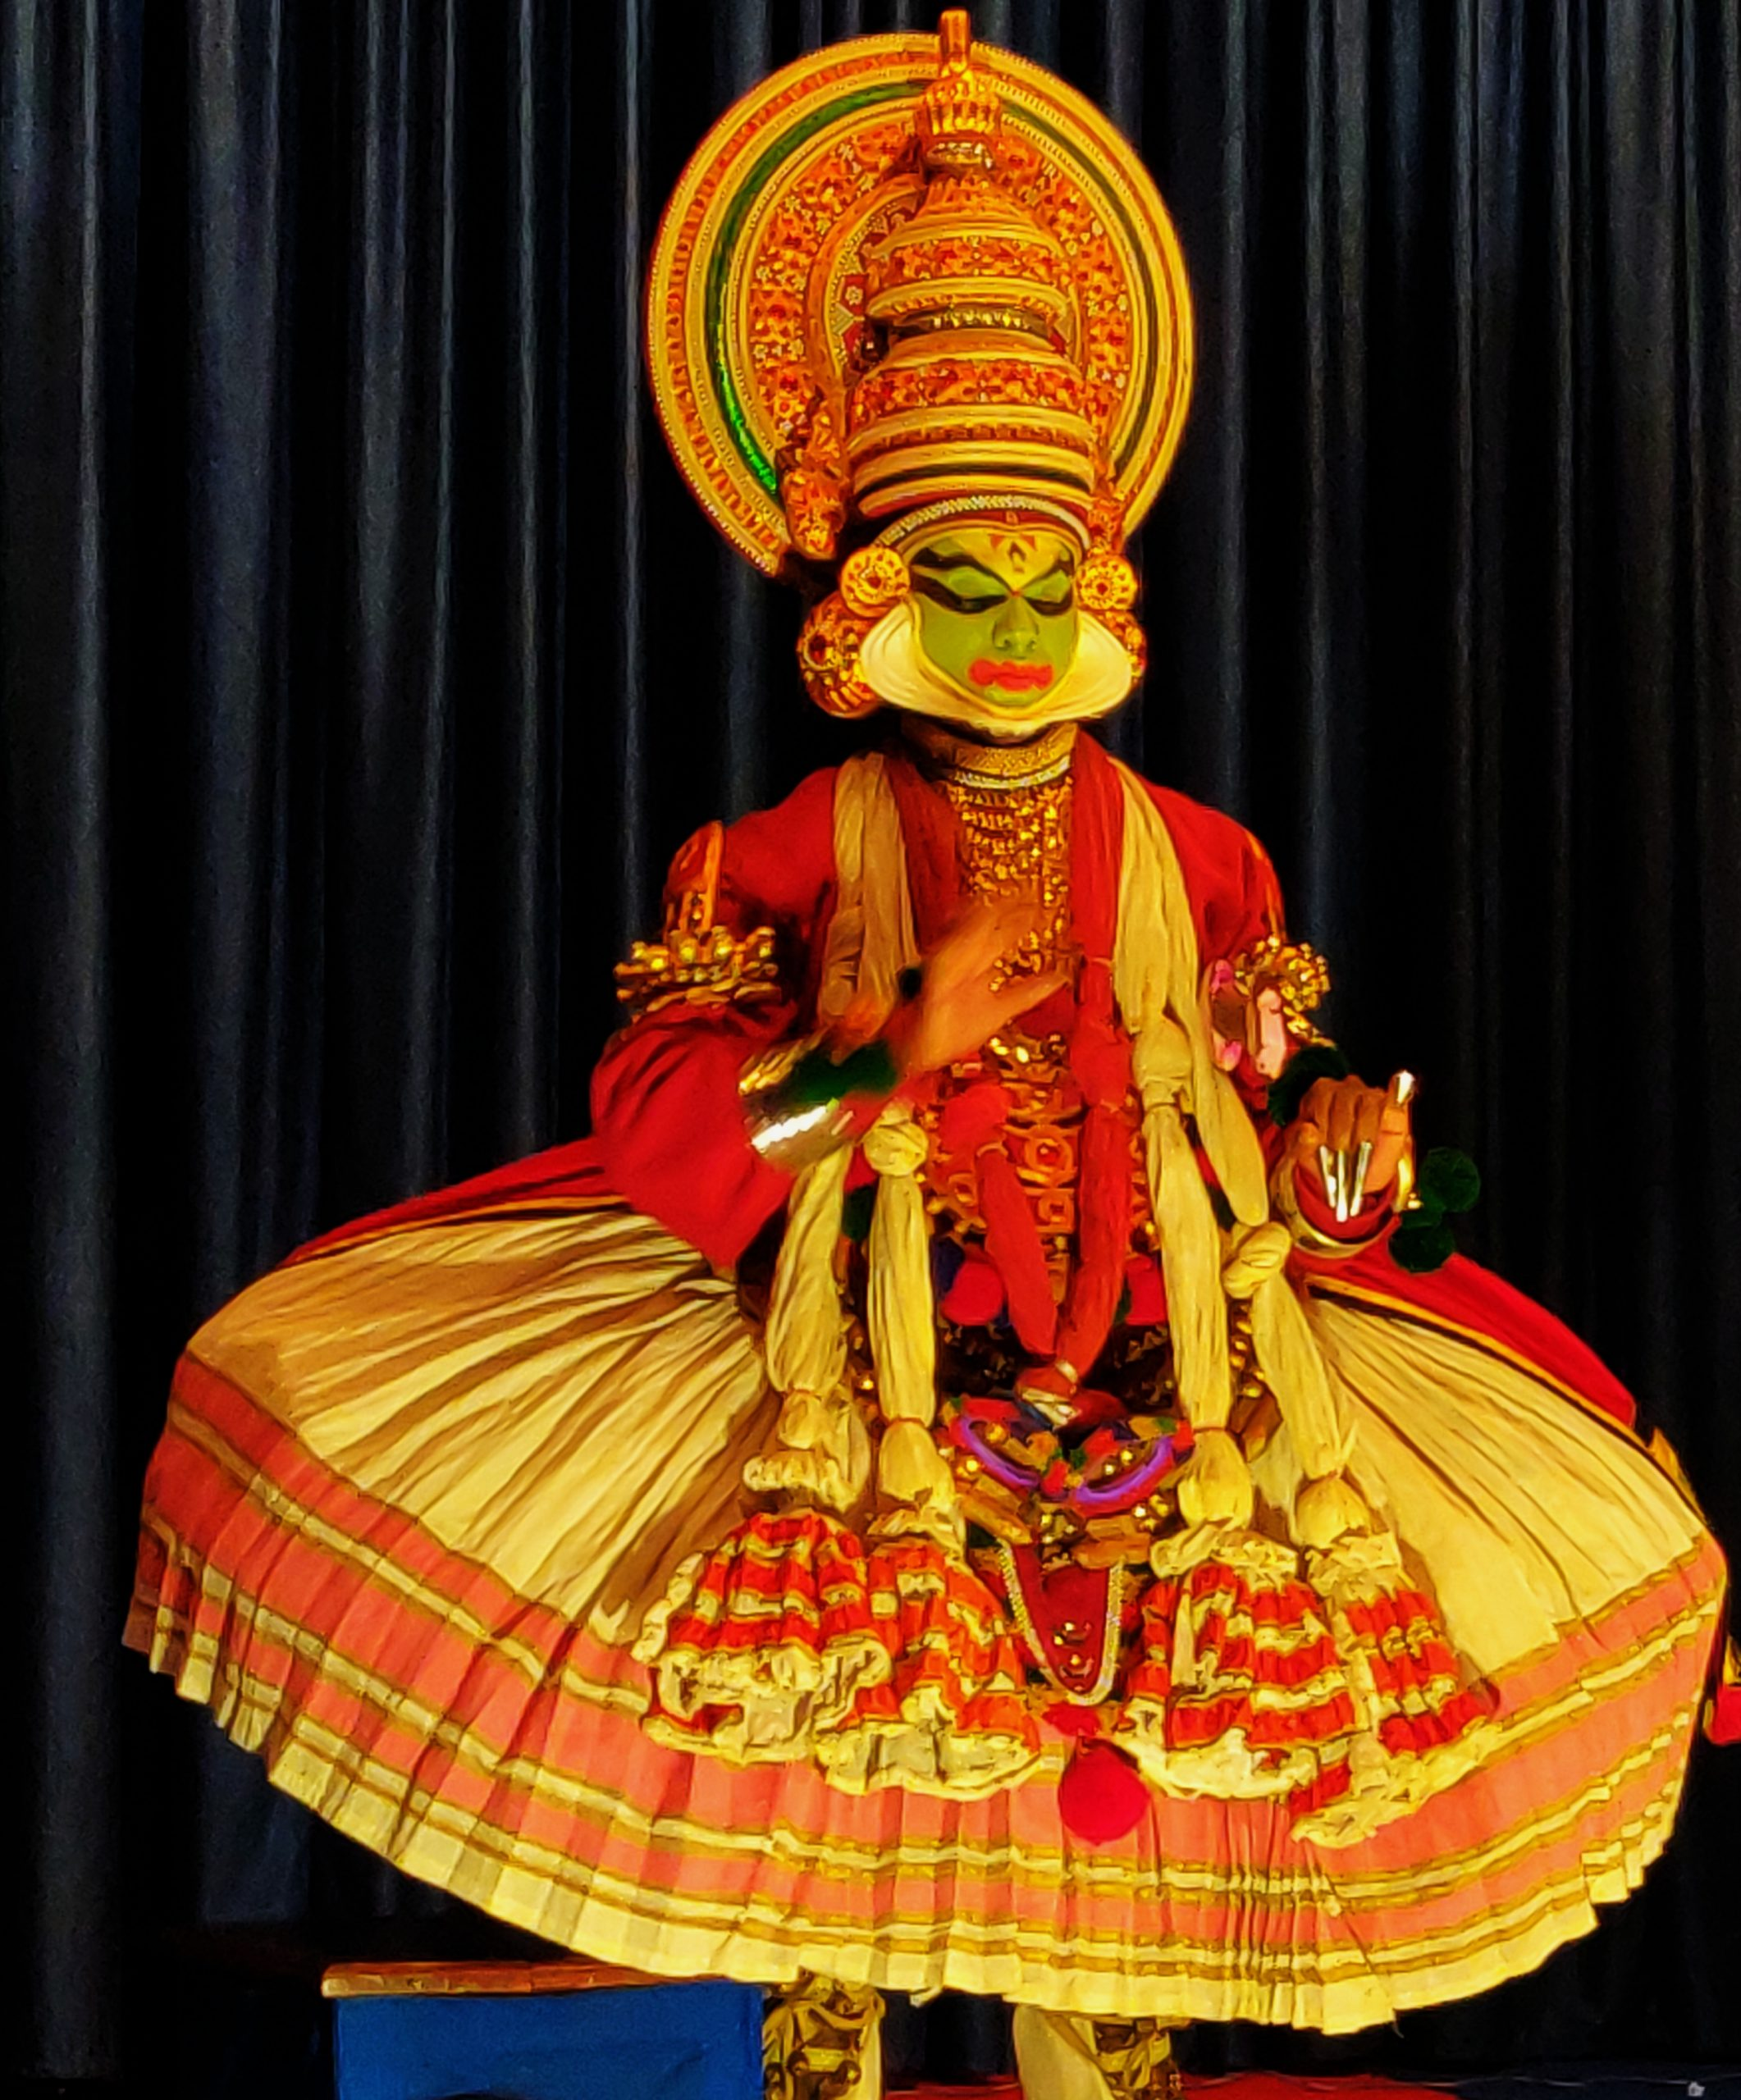 Watch a Kathakali Dance show!